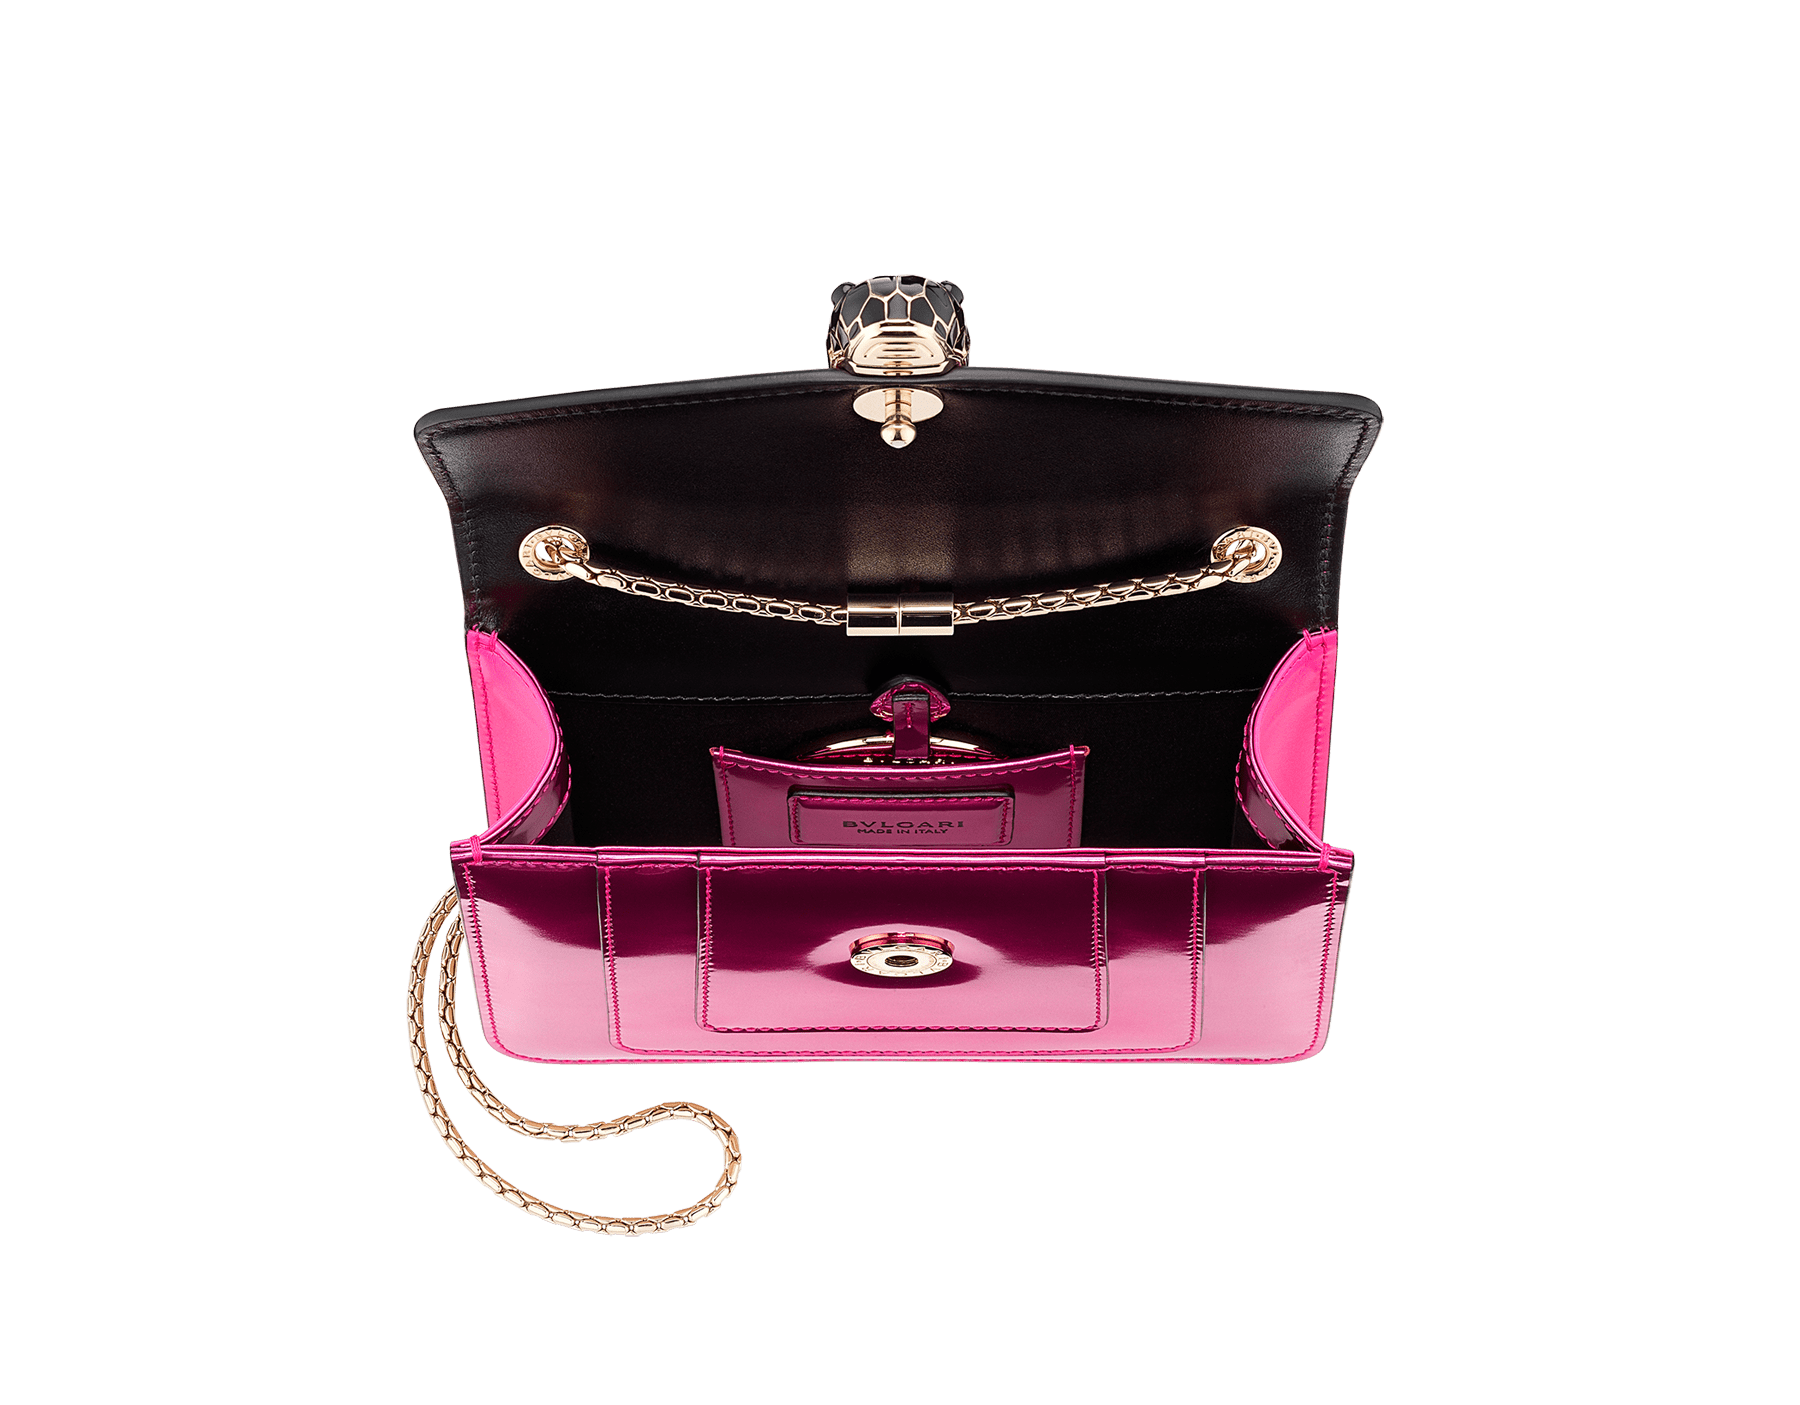 """Serpenti Forever"" crossbody bag in flash amethyst new brushed metallic calf leather. Iconic snake head closure in light gold plated brass enriched with black and flash amethyst enamel and black onyx eyes. 288885 image 4"